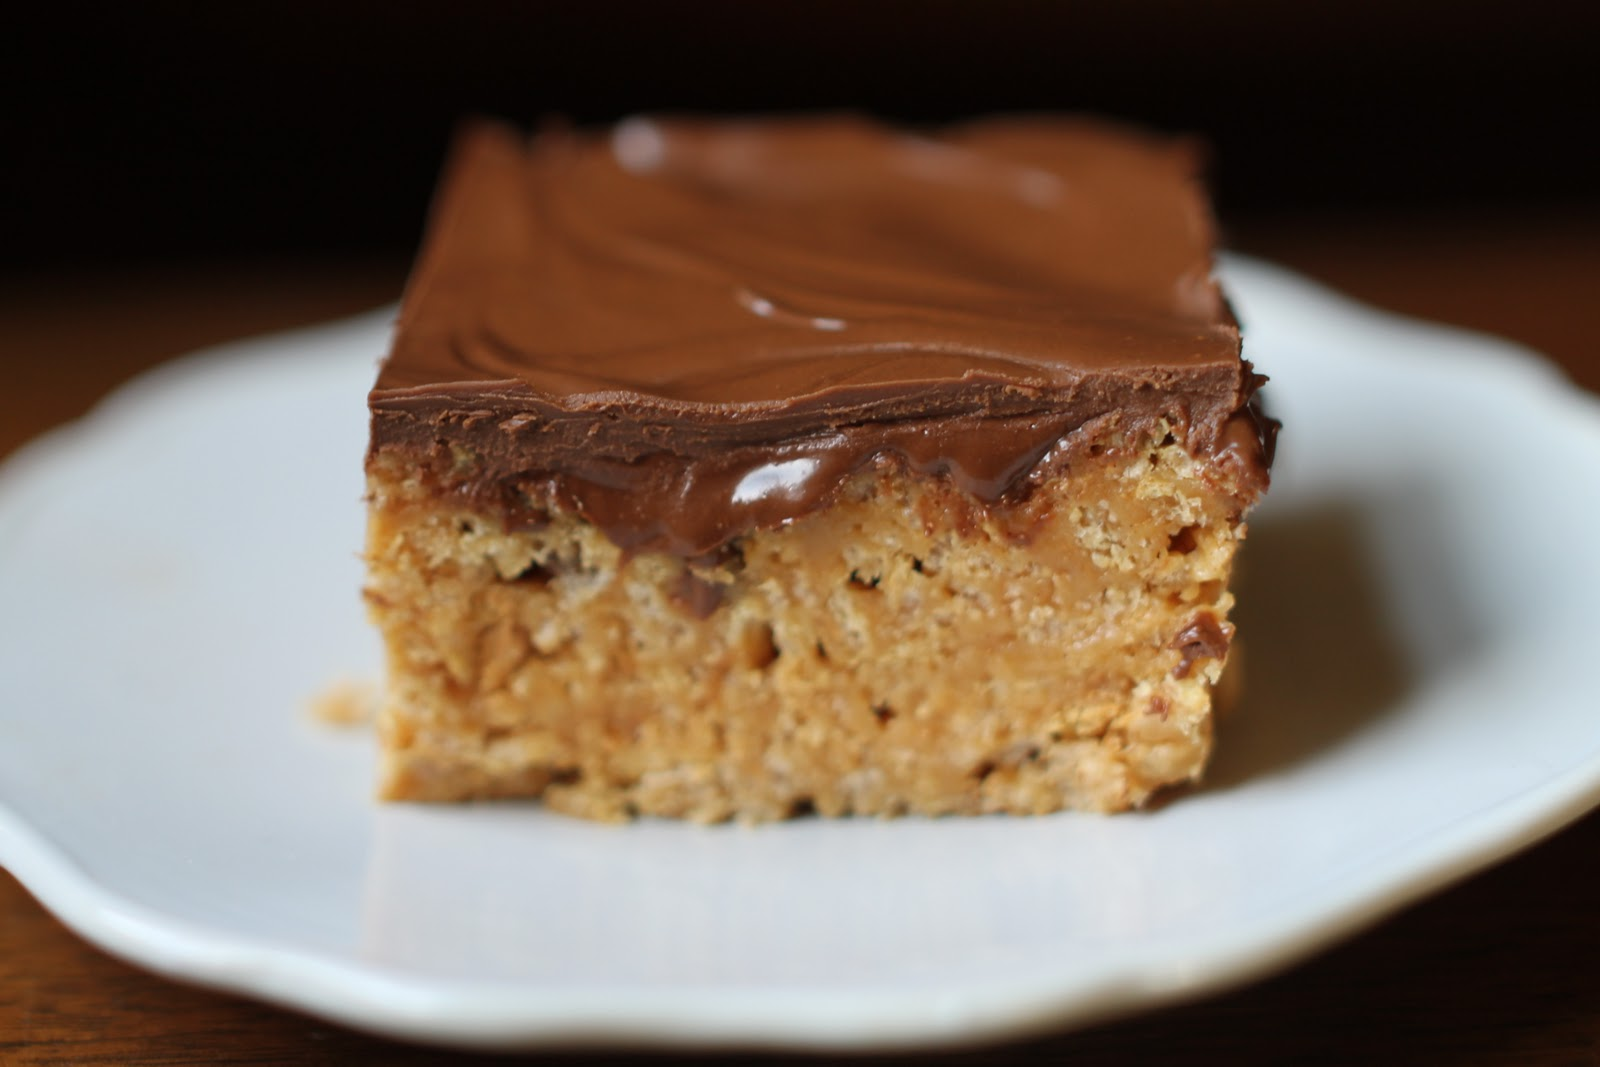 You must use Special K cereal in this recipe. Puffed rice cereals become soggy in the rich caramel peanut butter mixture. The crisp cereal stays crunchy and gives the bars the most satisfying chewy texture that is perfectly complemented by the creamy frosting that stays soft and velvety.